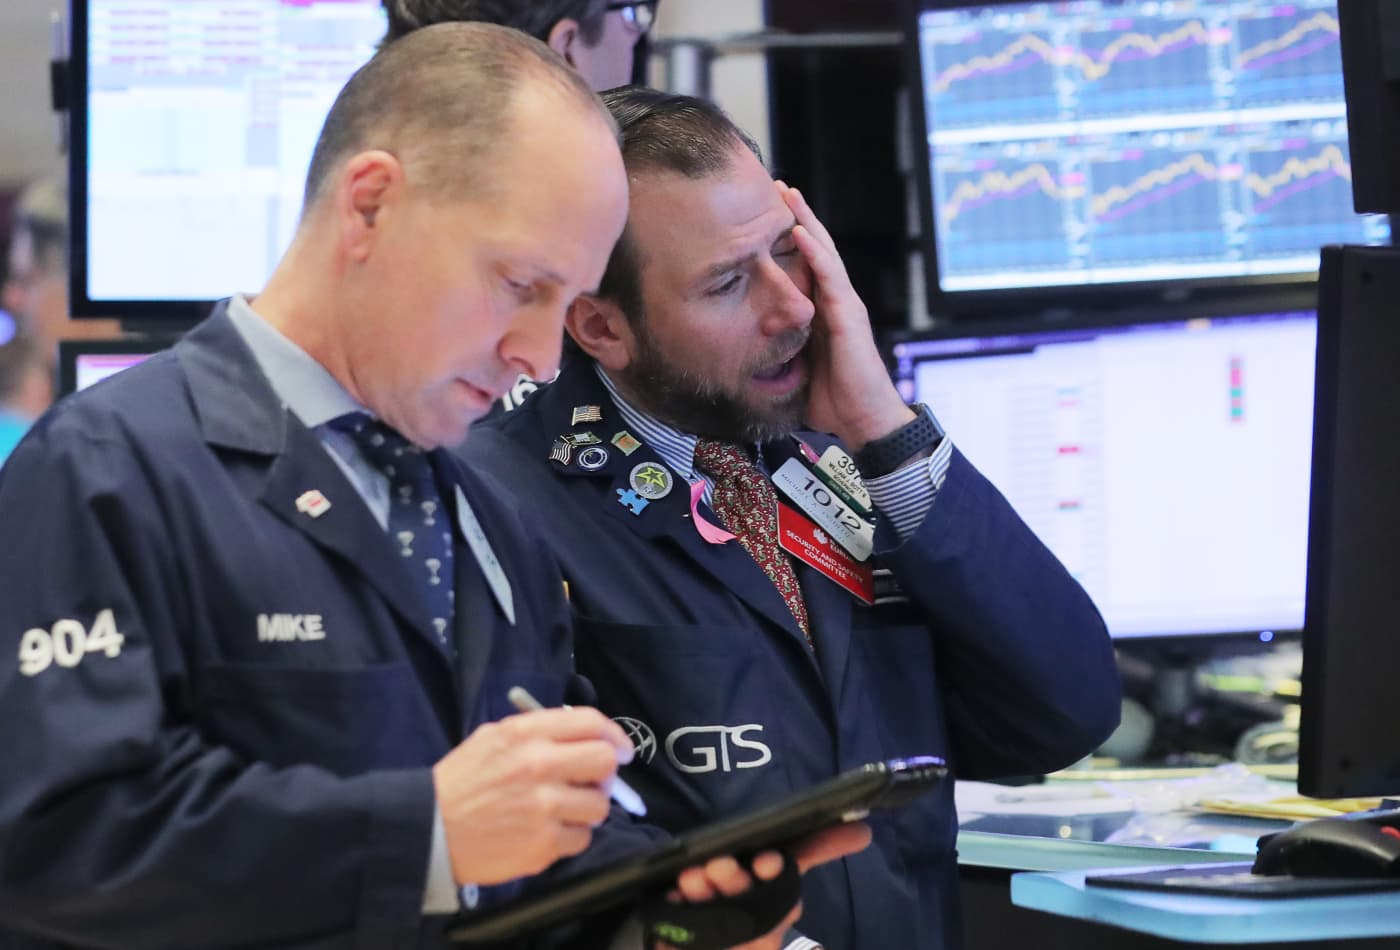 Stock market similarities to 2018 could signal a wave of volatility and a correction